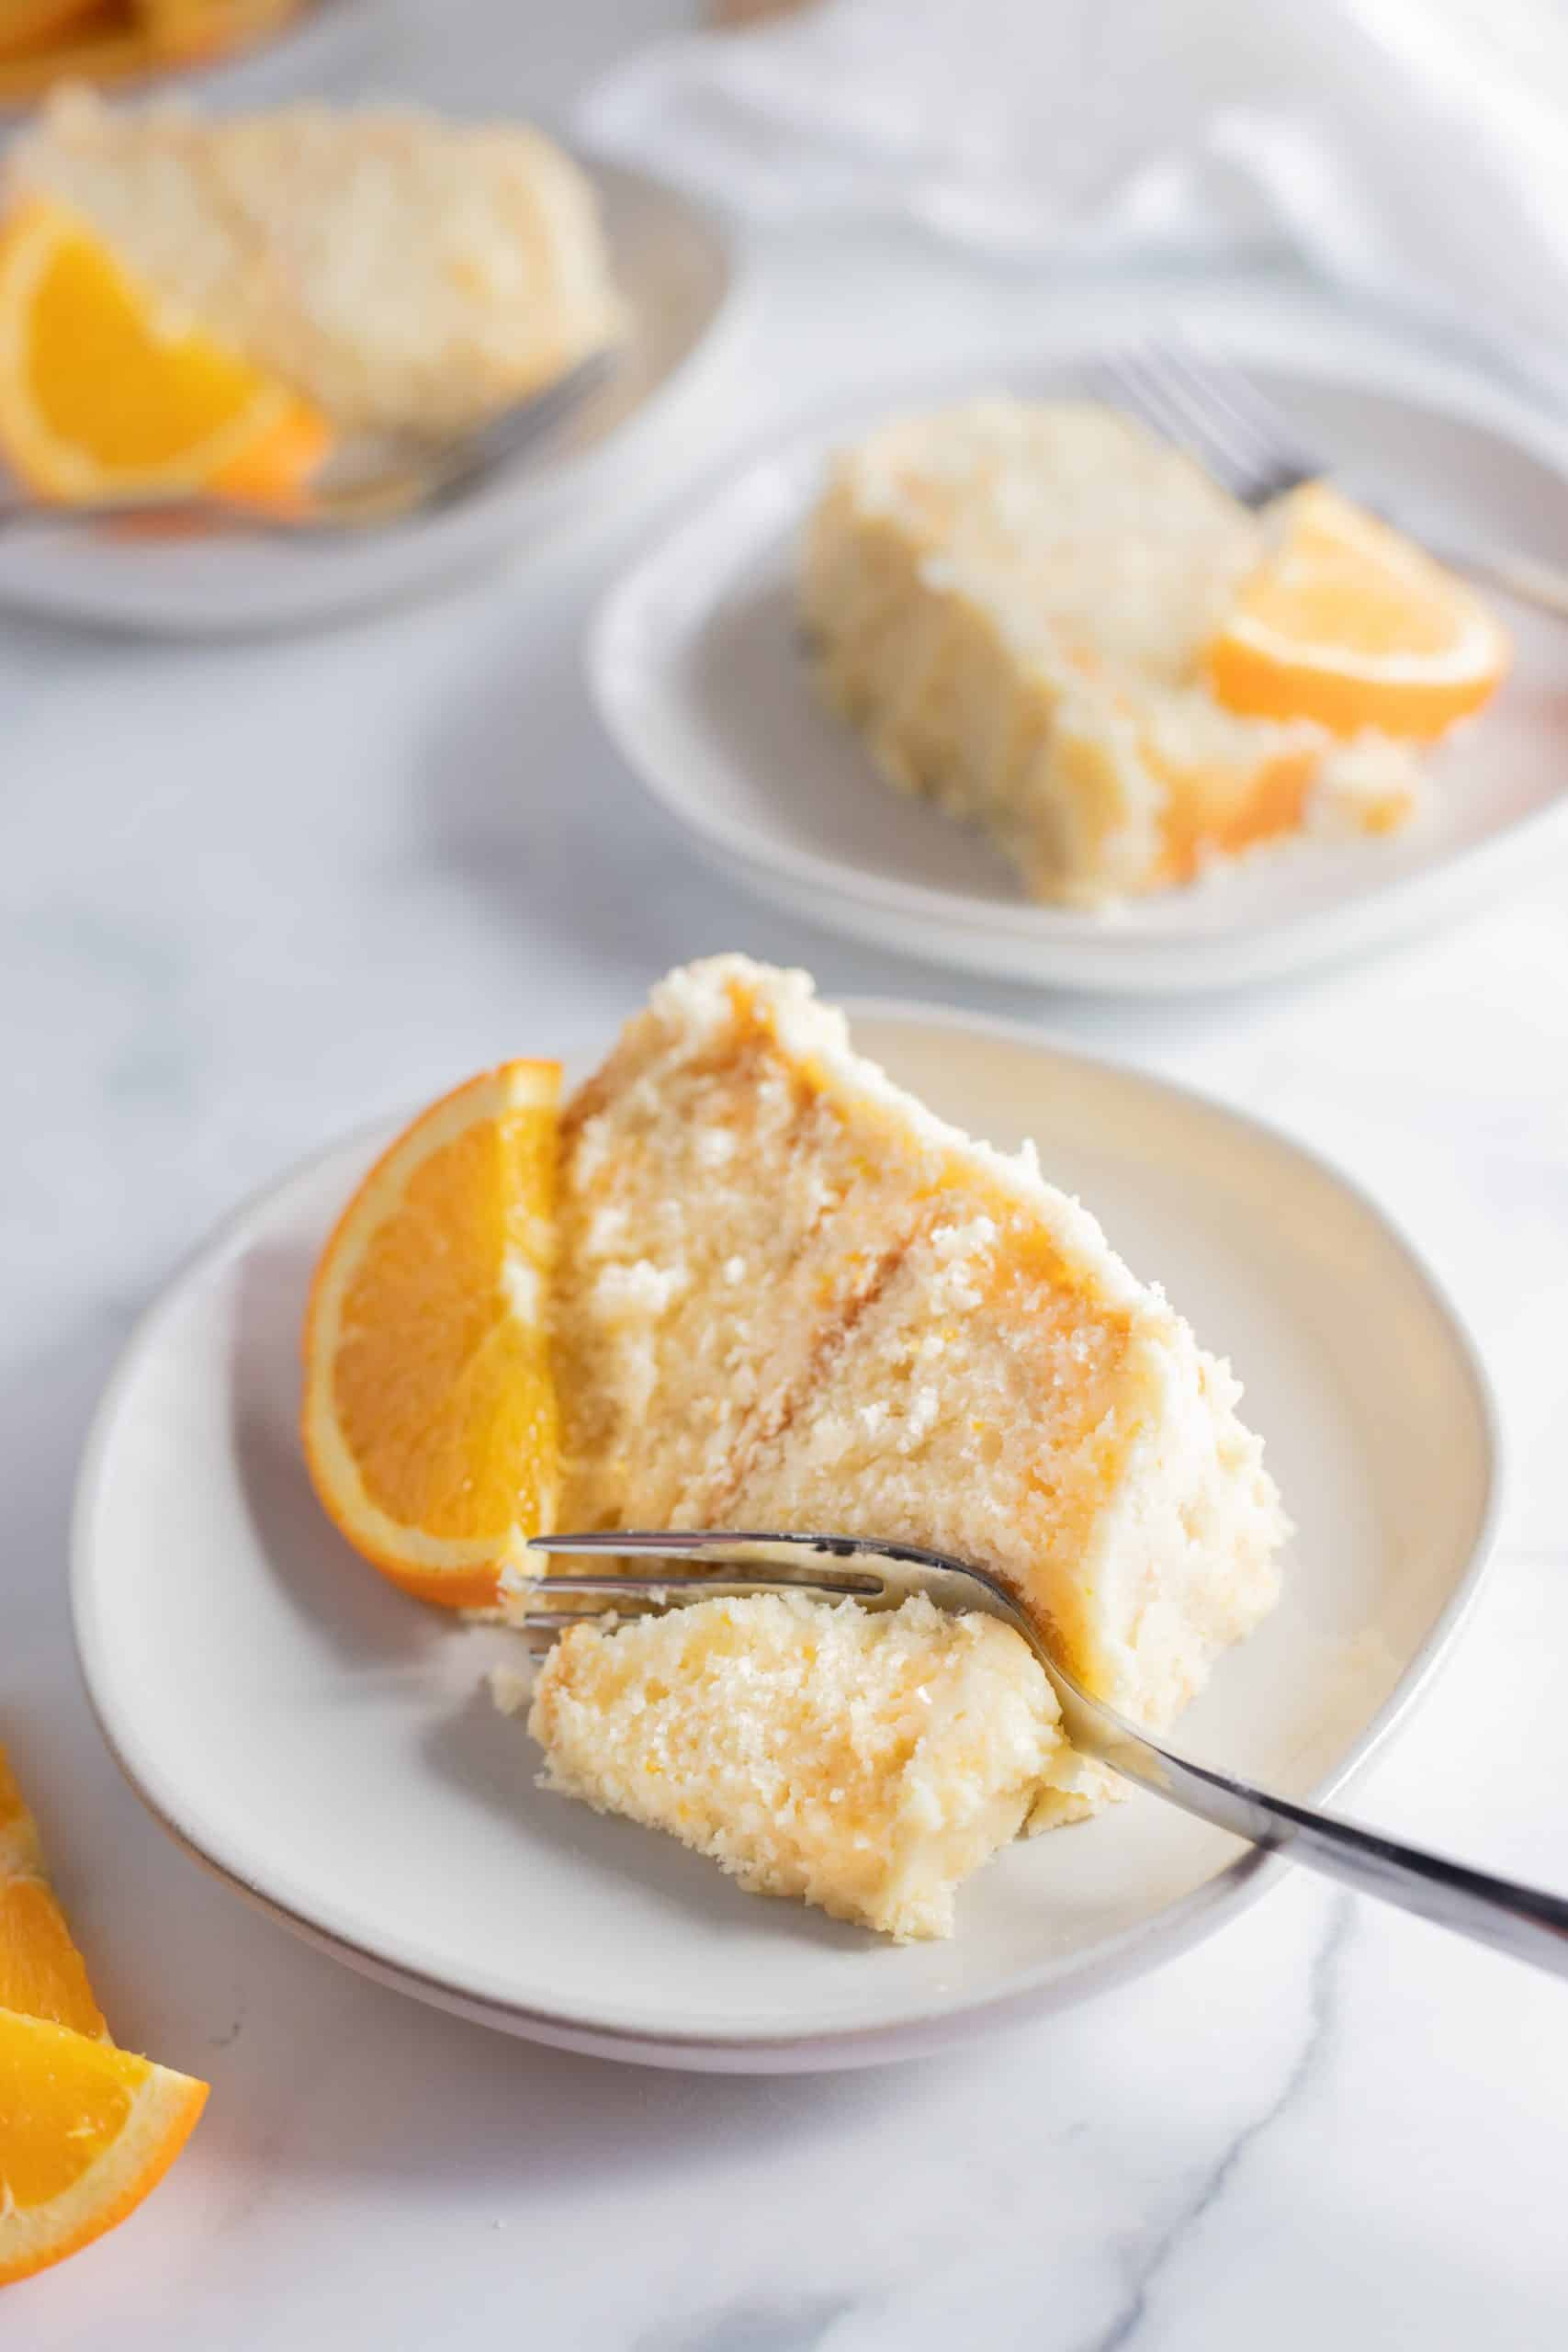 orange creamsicle cake slices on a plate with a fork